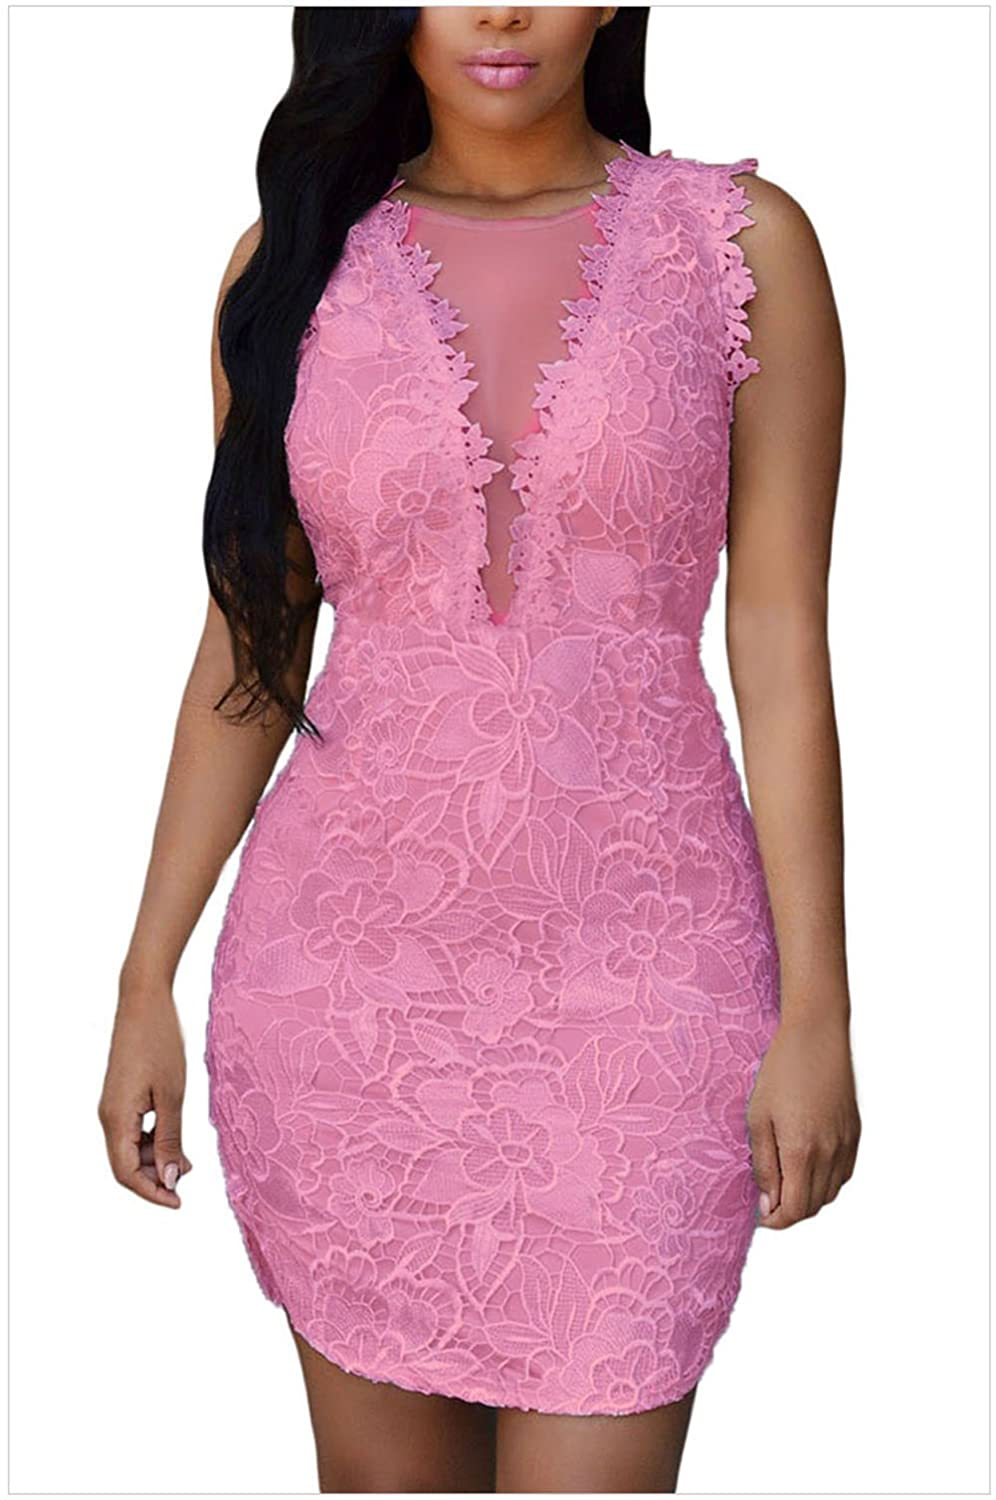 MEINICE Lace Nude Mesh Accent Dress